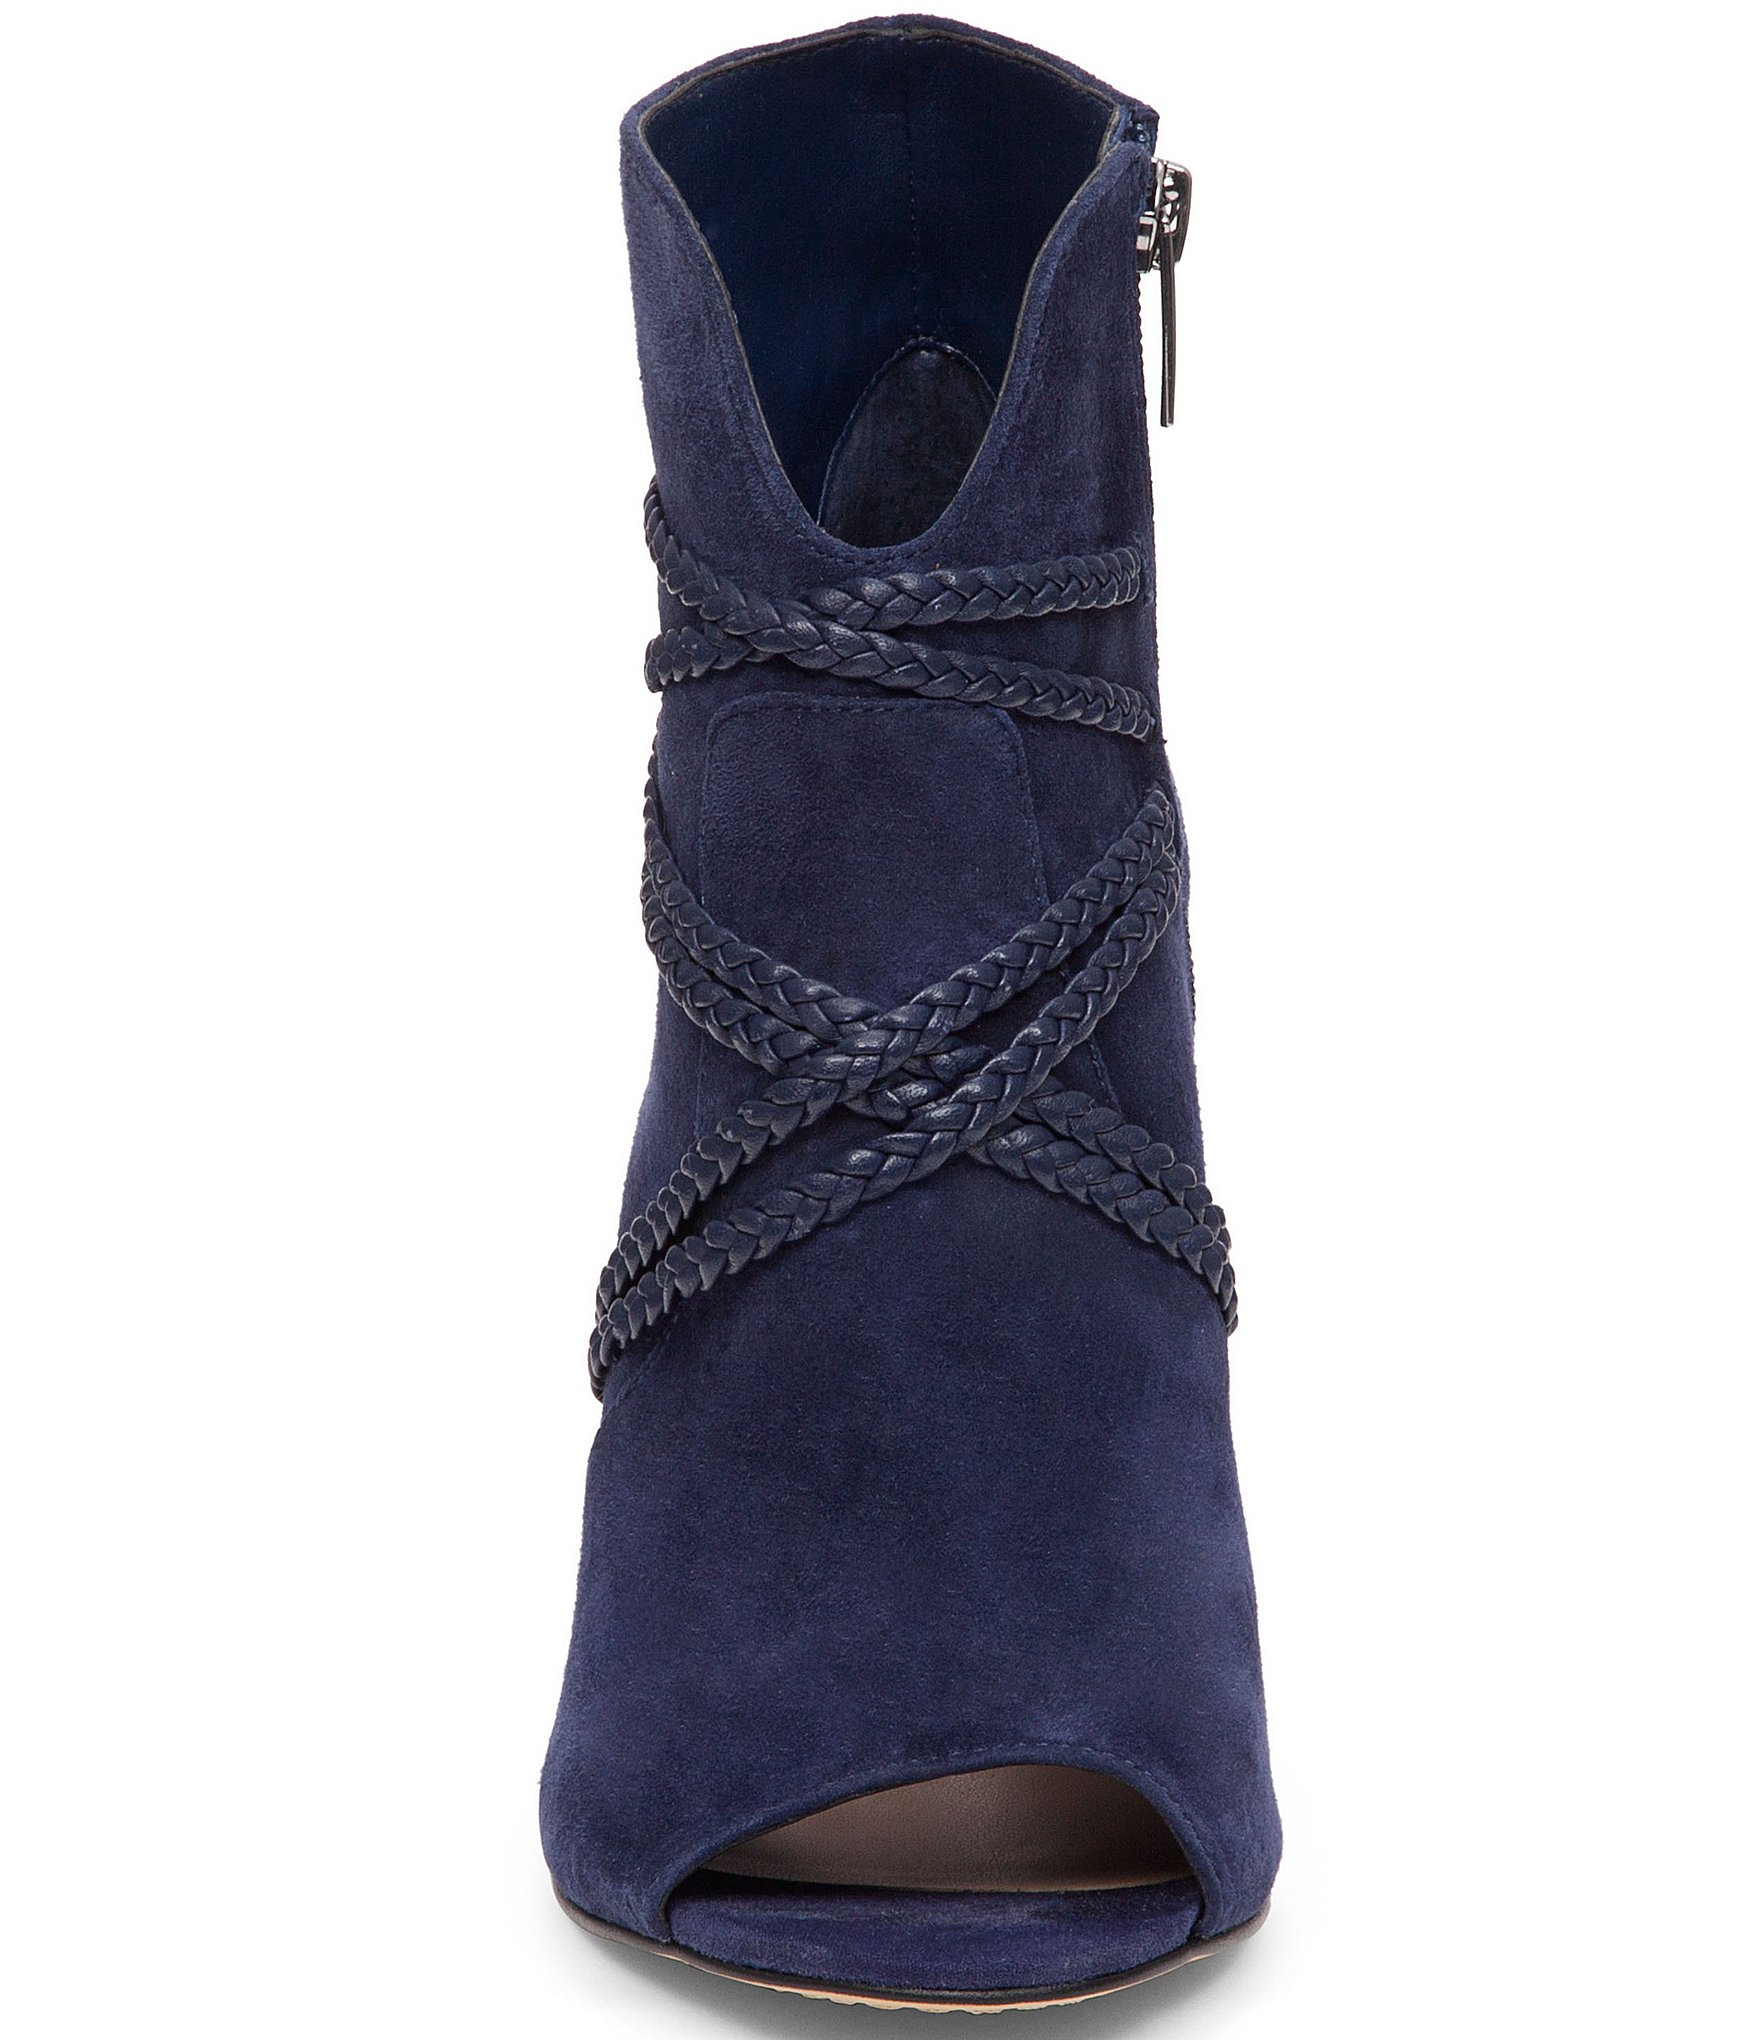 Vince camuto Astan Suede Open-toe Booties in Blue | Lyst